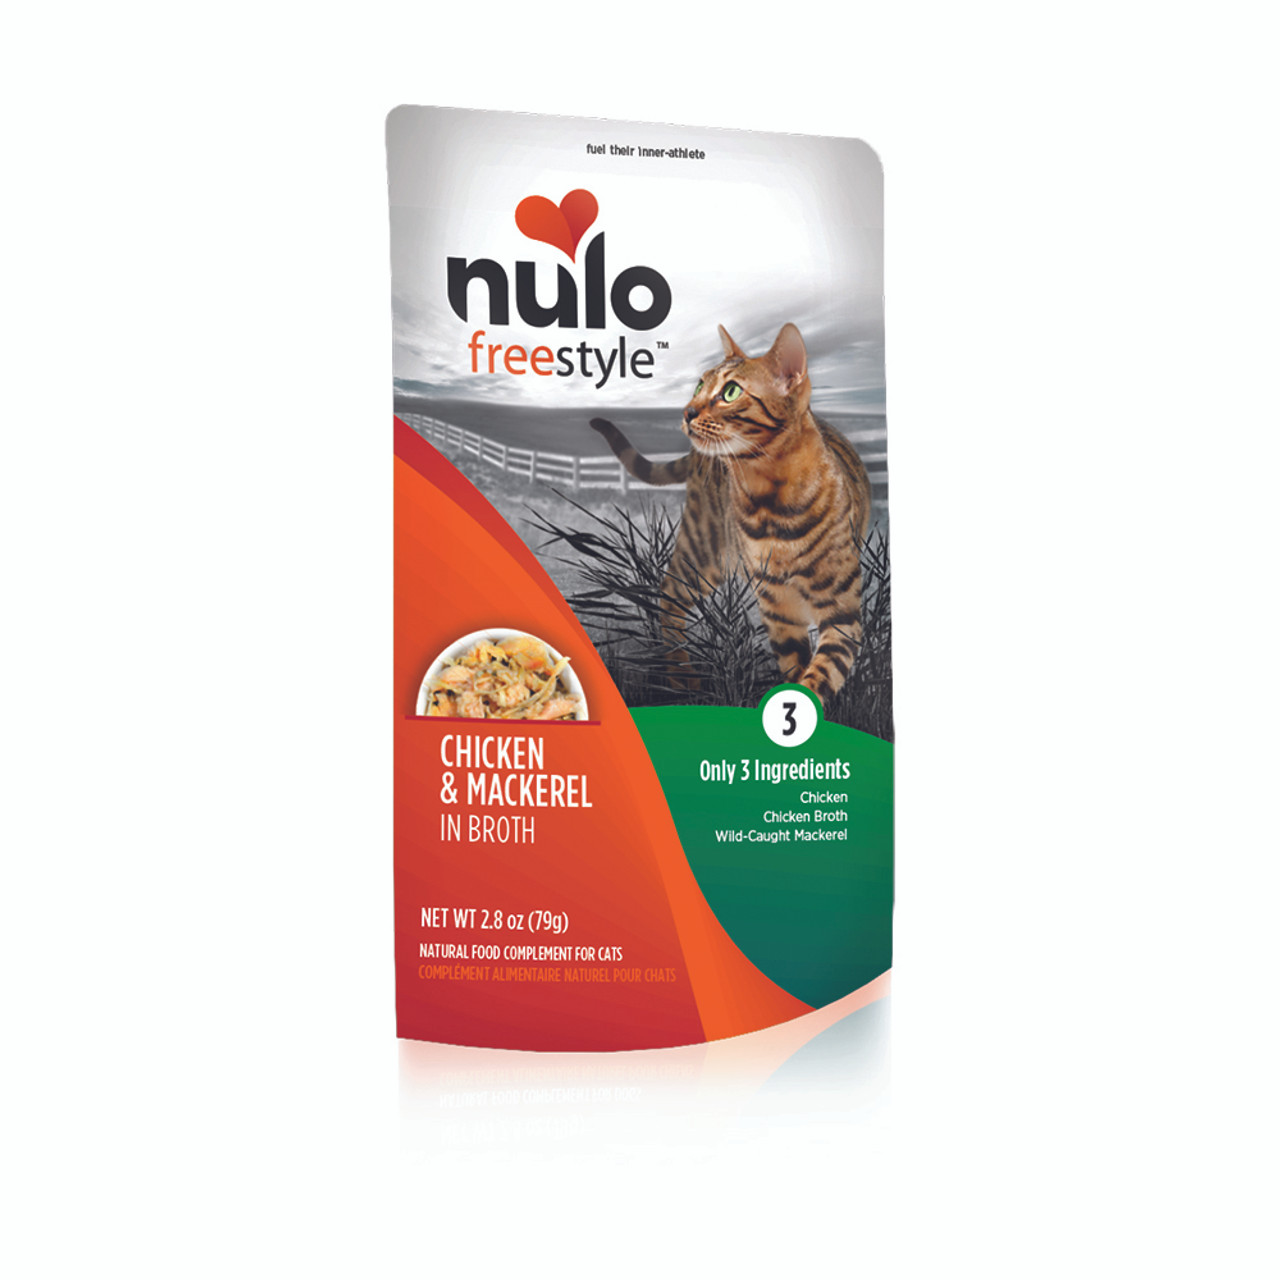 Nulo Freestyle Chicken & Mackerel in Broth Cat Food Pouch